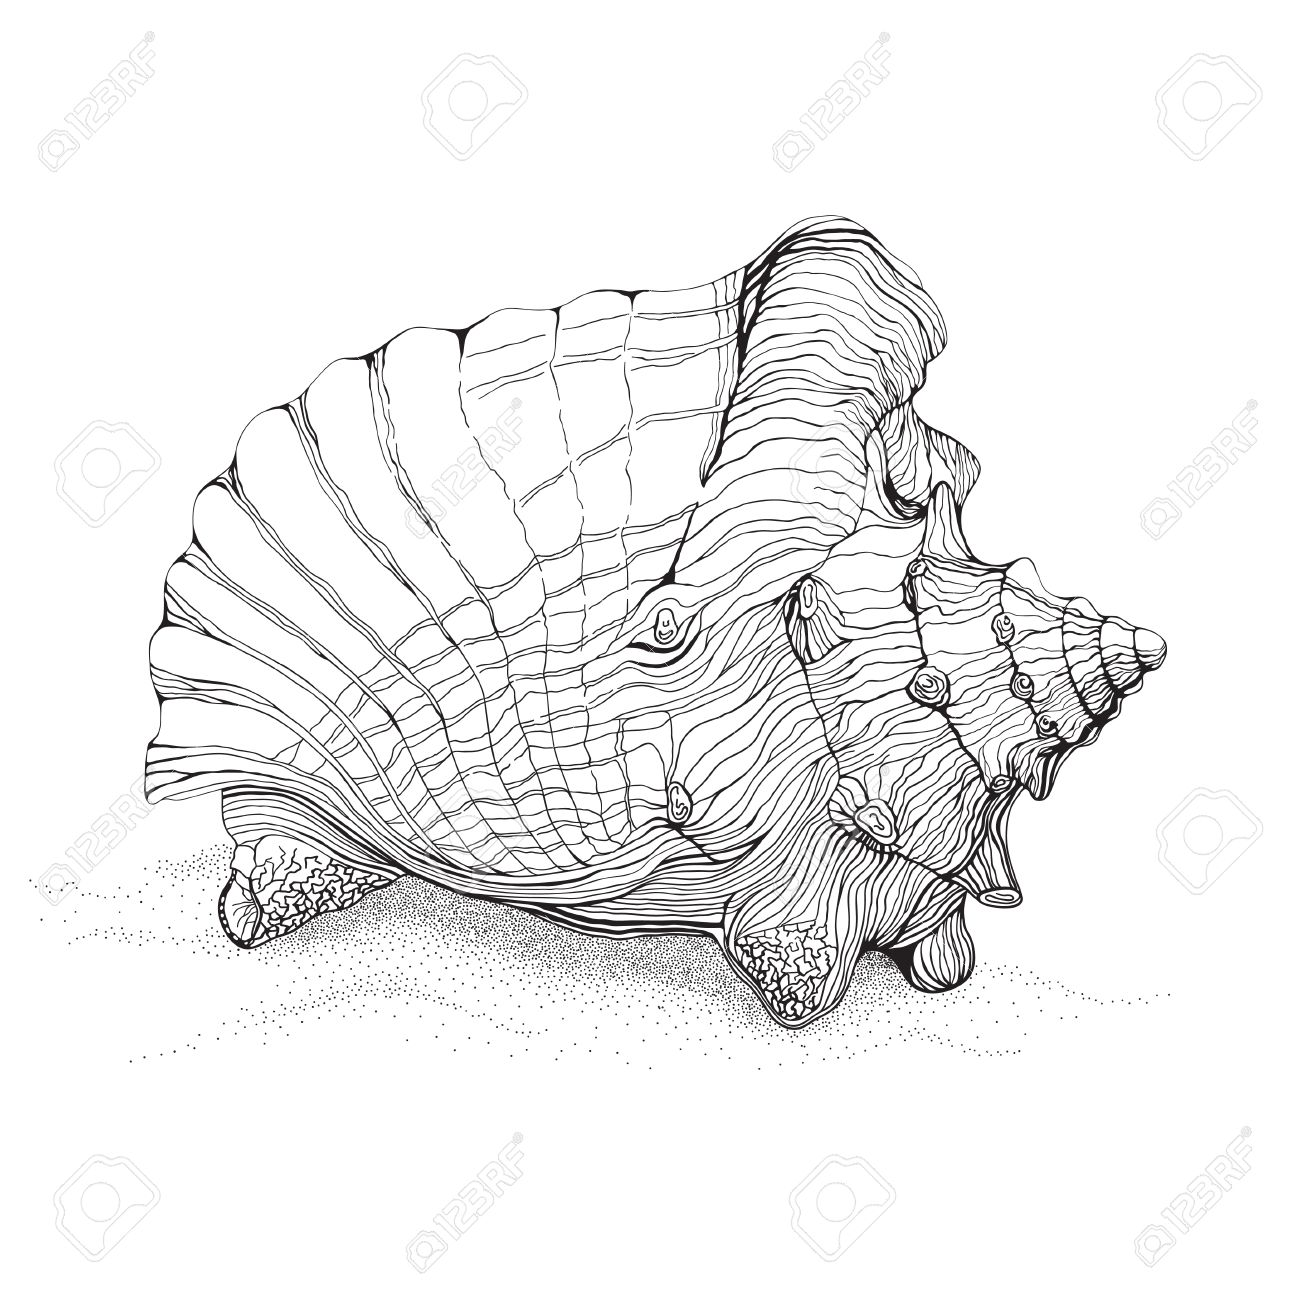 1300x1300 Decorative Pen And Ink Style Drawing Of Big Conch Shell On Sand